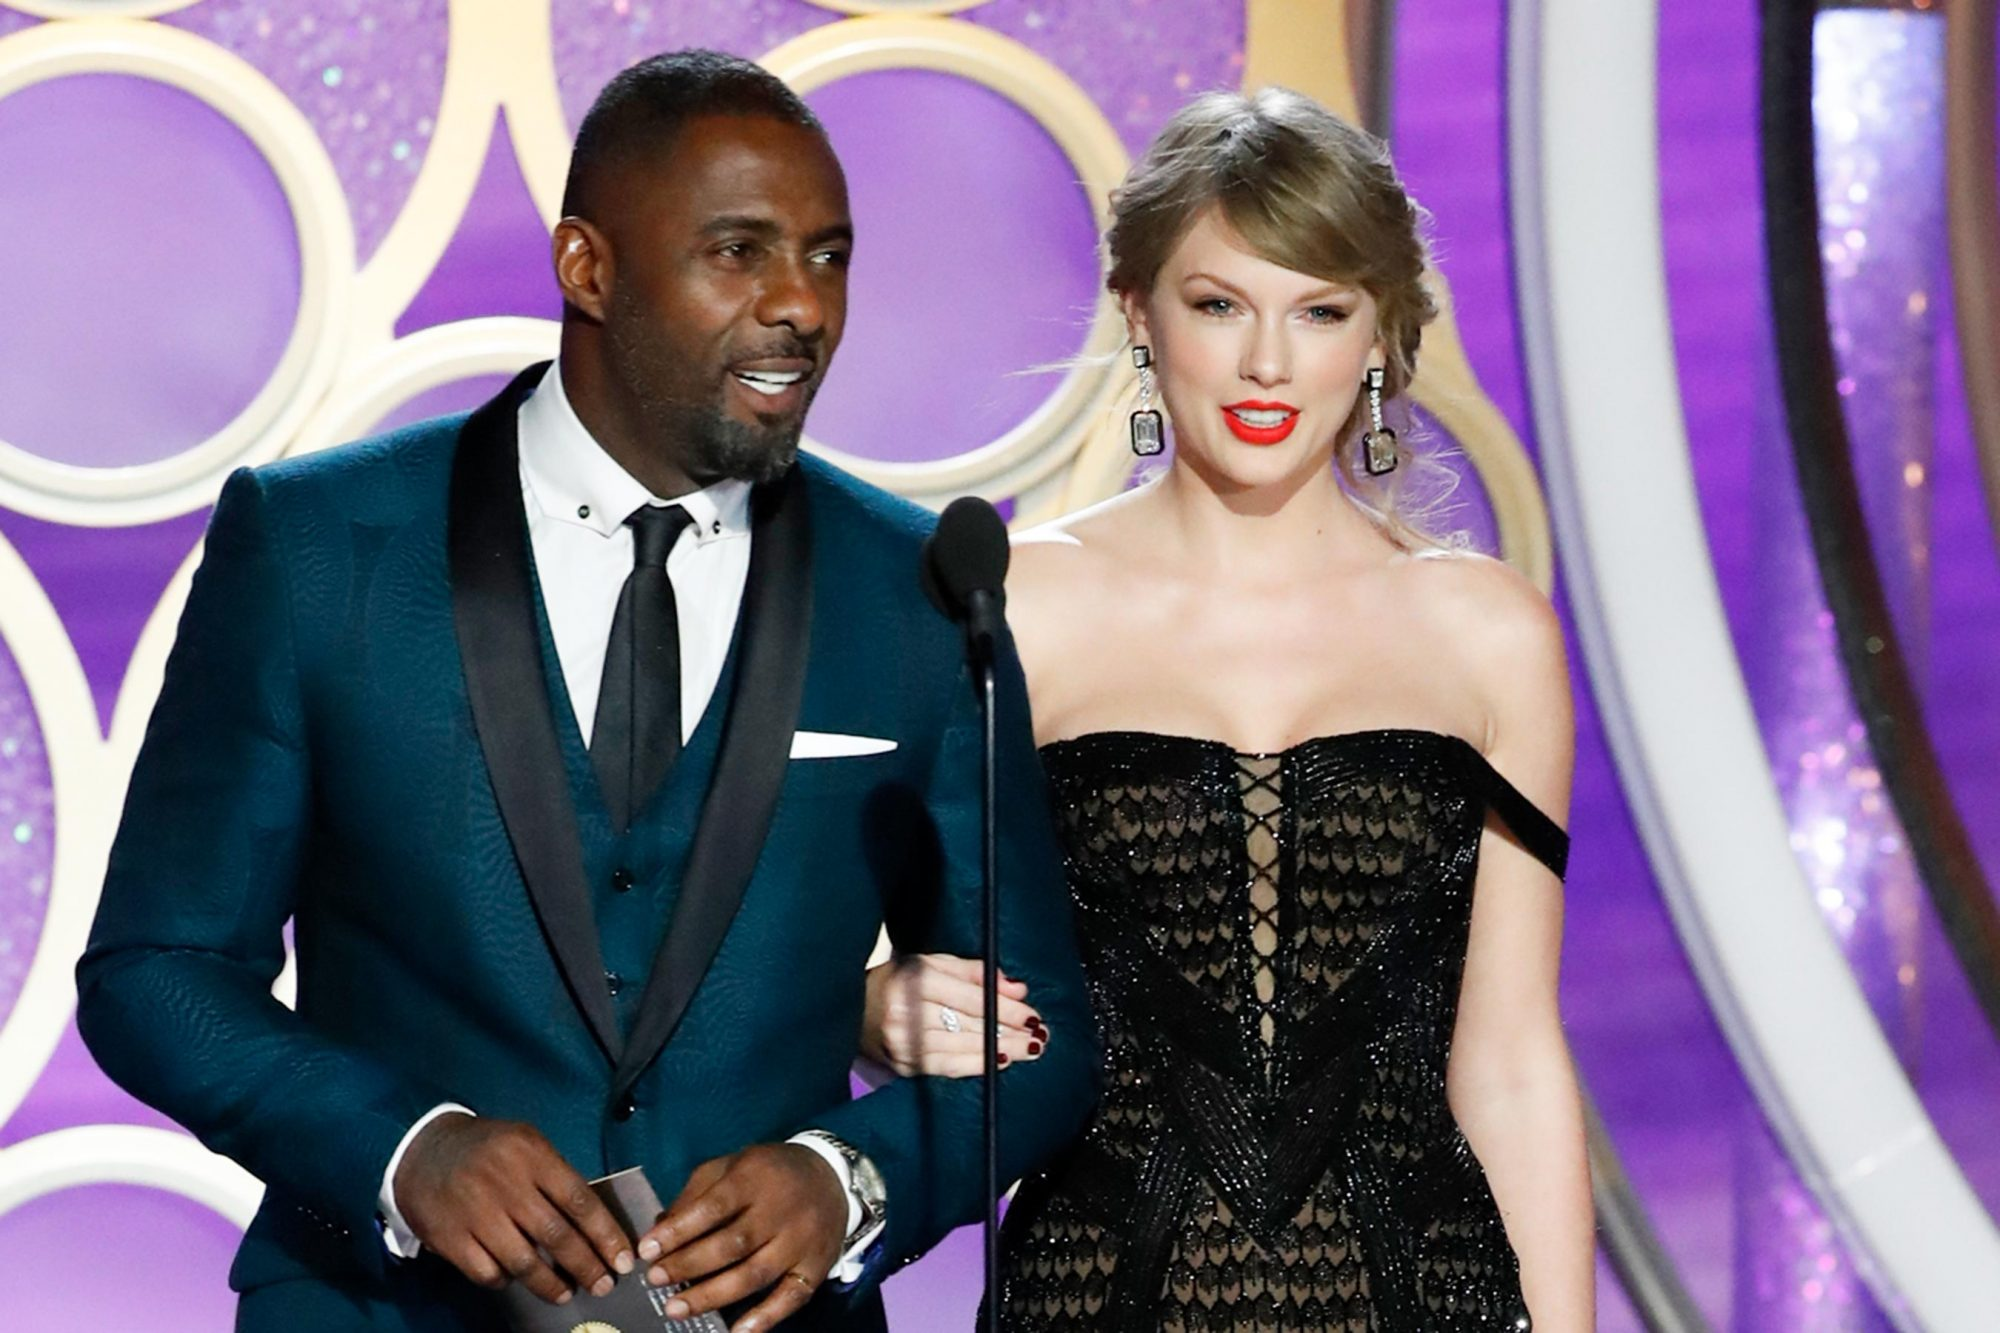 Idris Elba and Taylor Swift